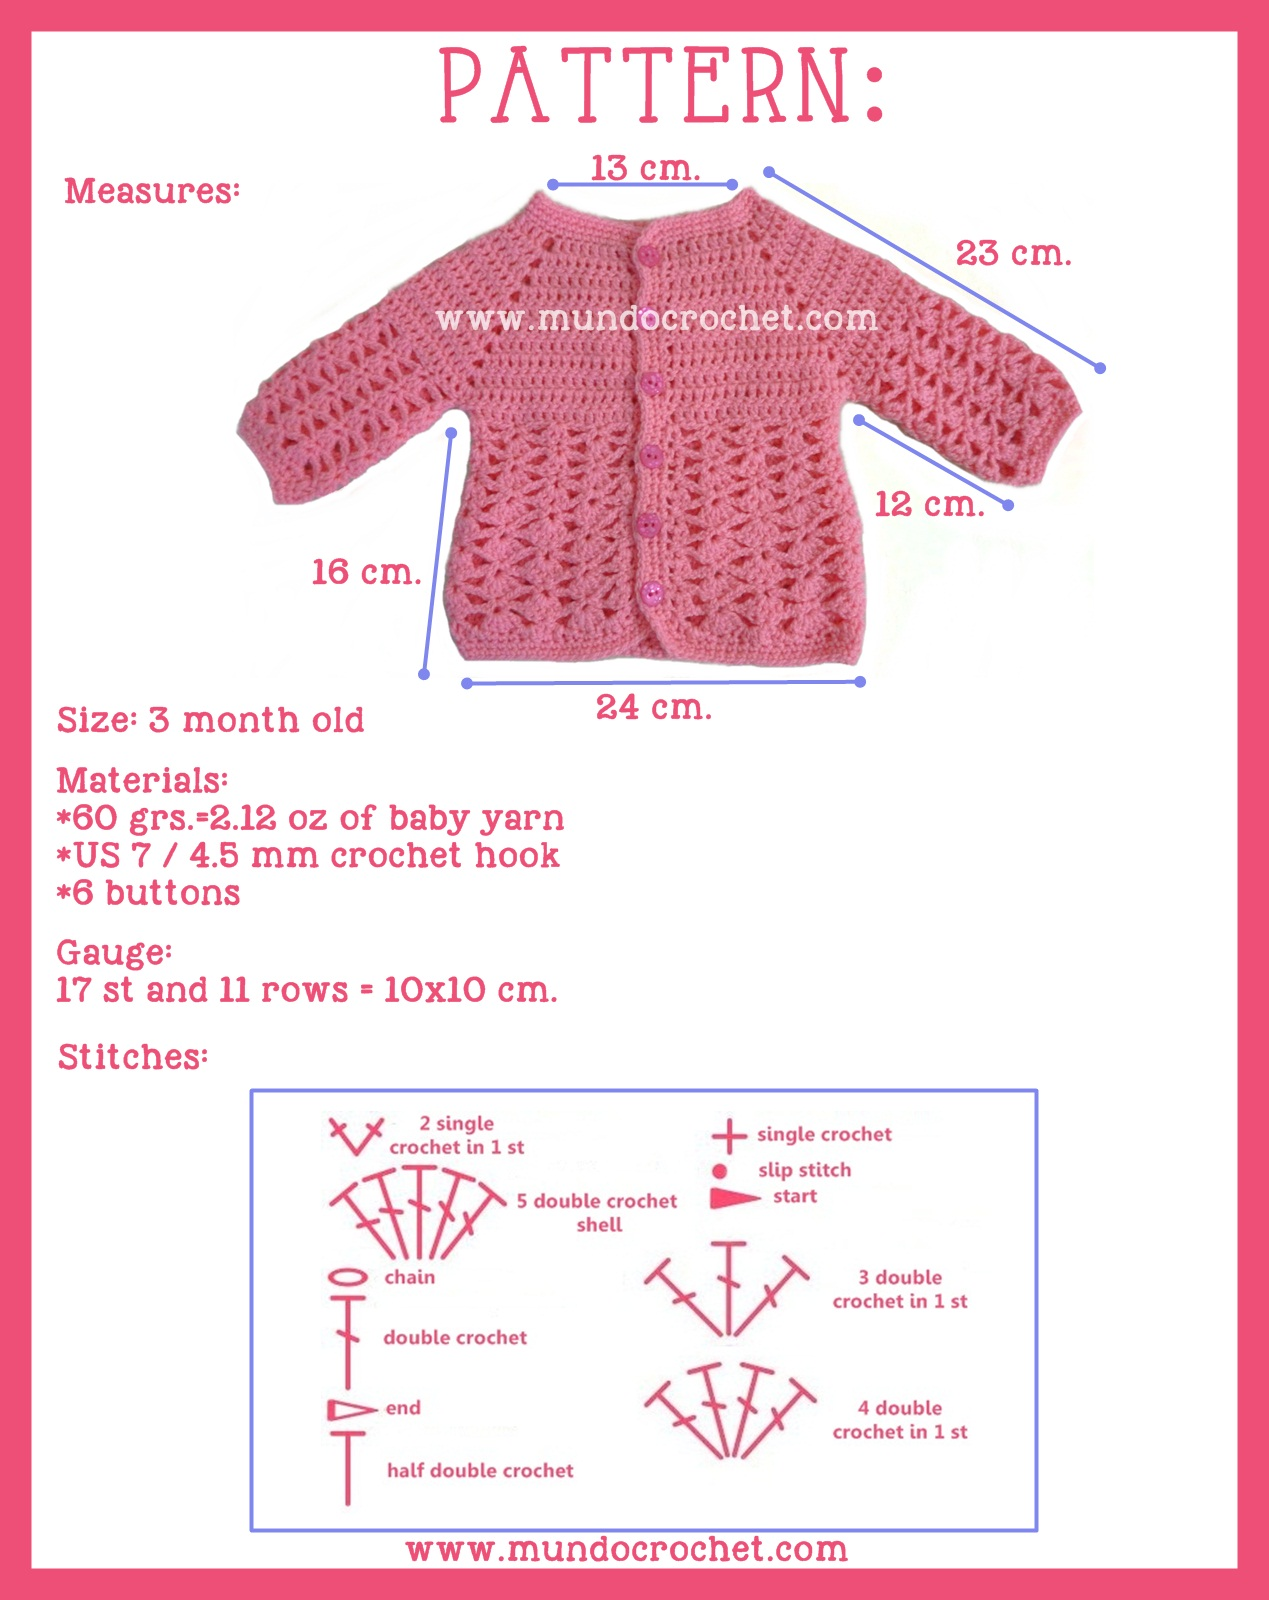 Jacket or sweater archives mundo crochet i hope you like it dont forget to send me the pictures of your projects using this pattern to soledadmundocrochet o share them in the facebook page ccuart Image collections